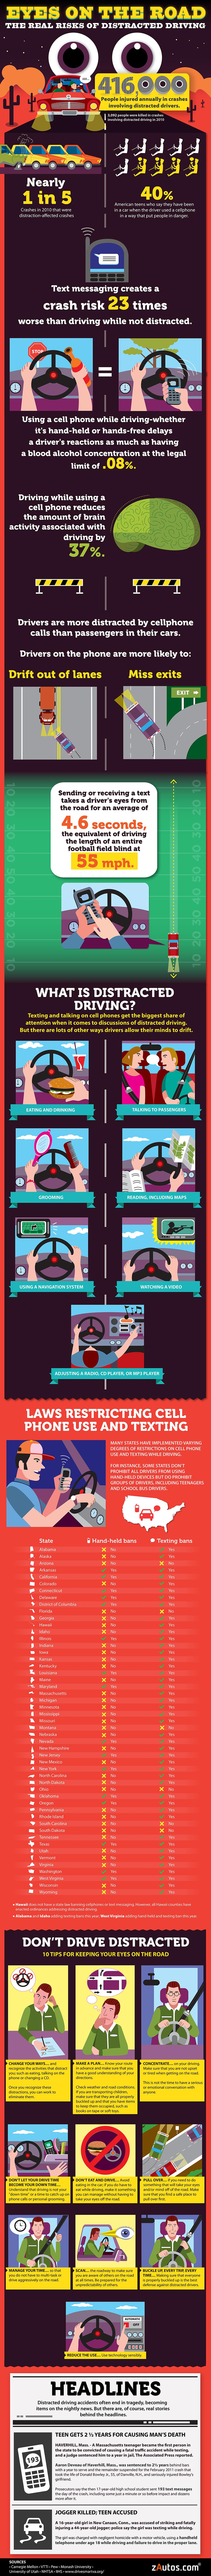 More about Distracted Driving